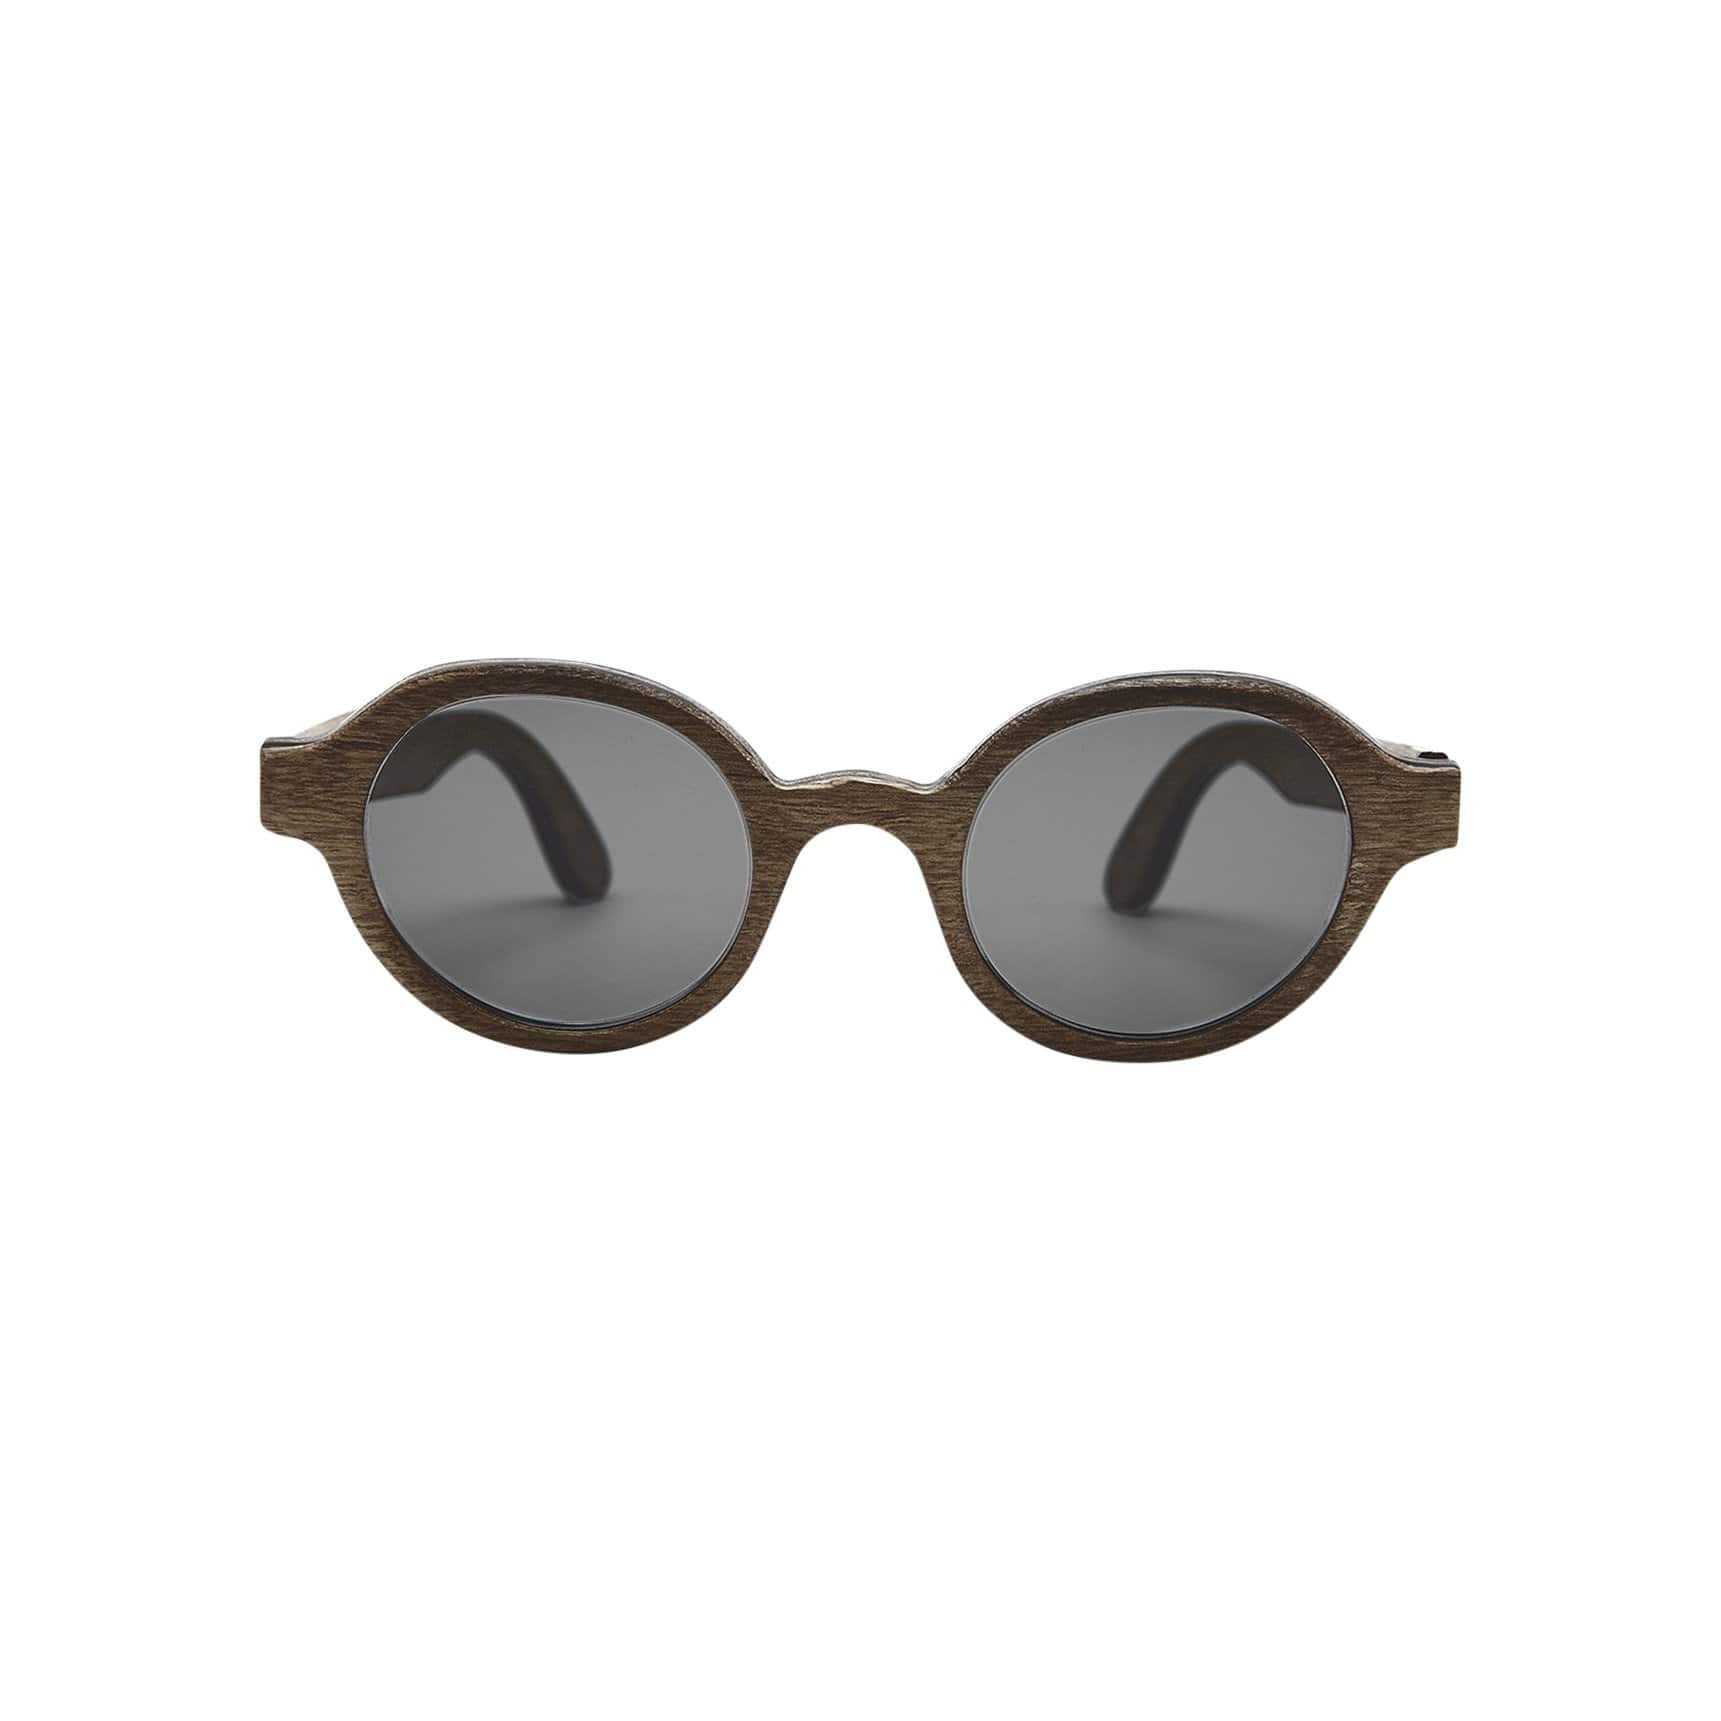 Ballo Sunglasses + Eyewear Santini with Imbuia Wood